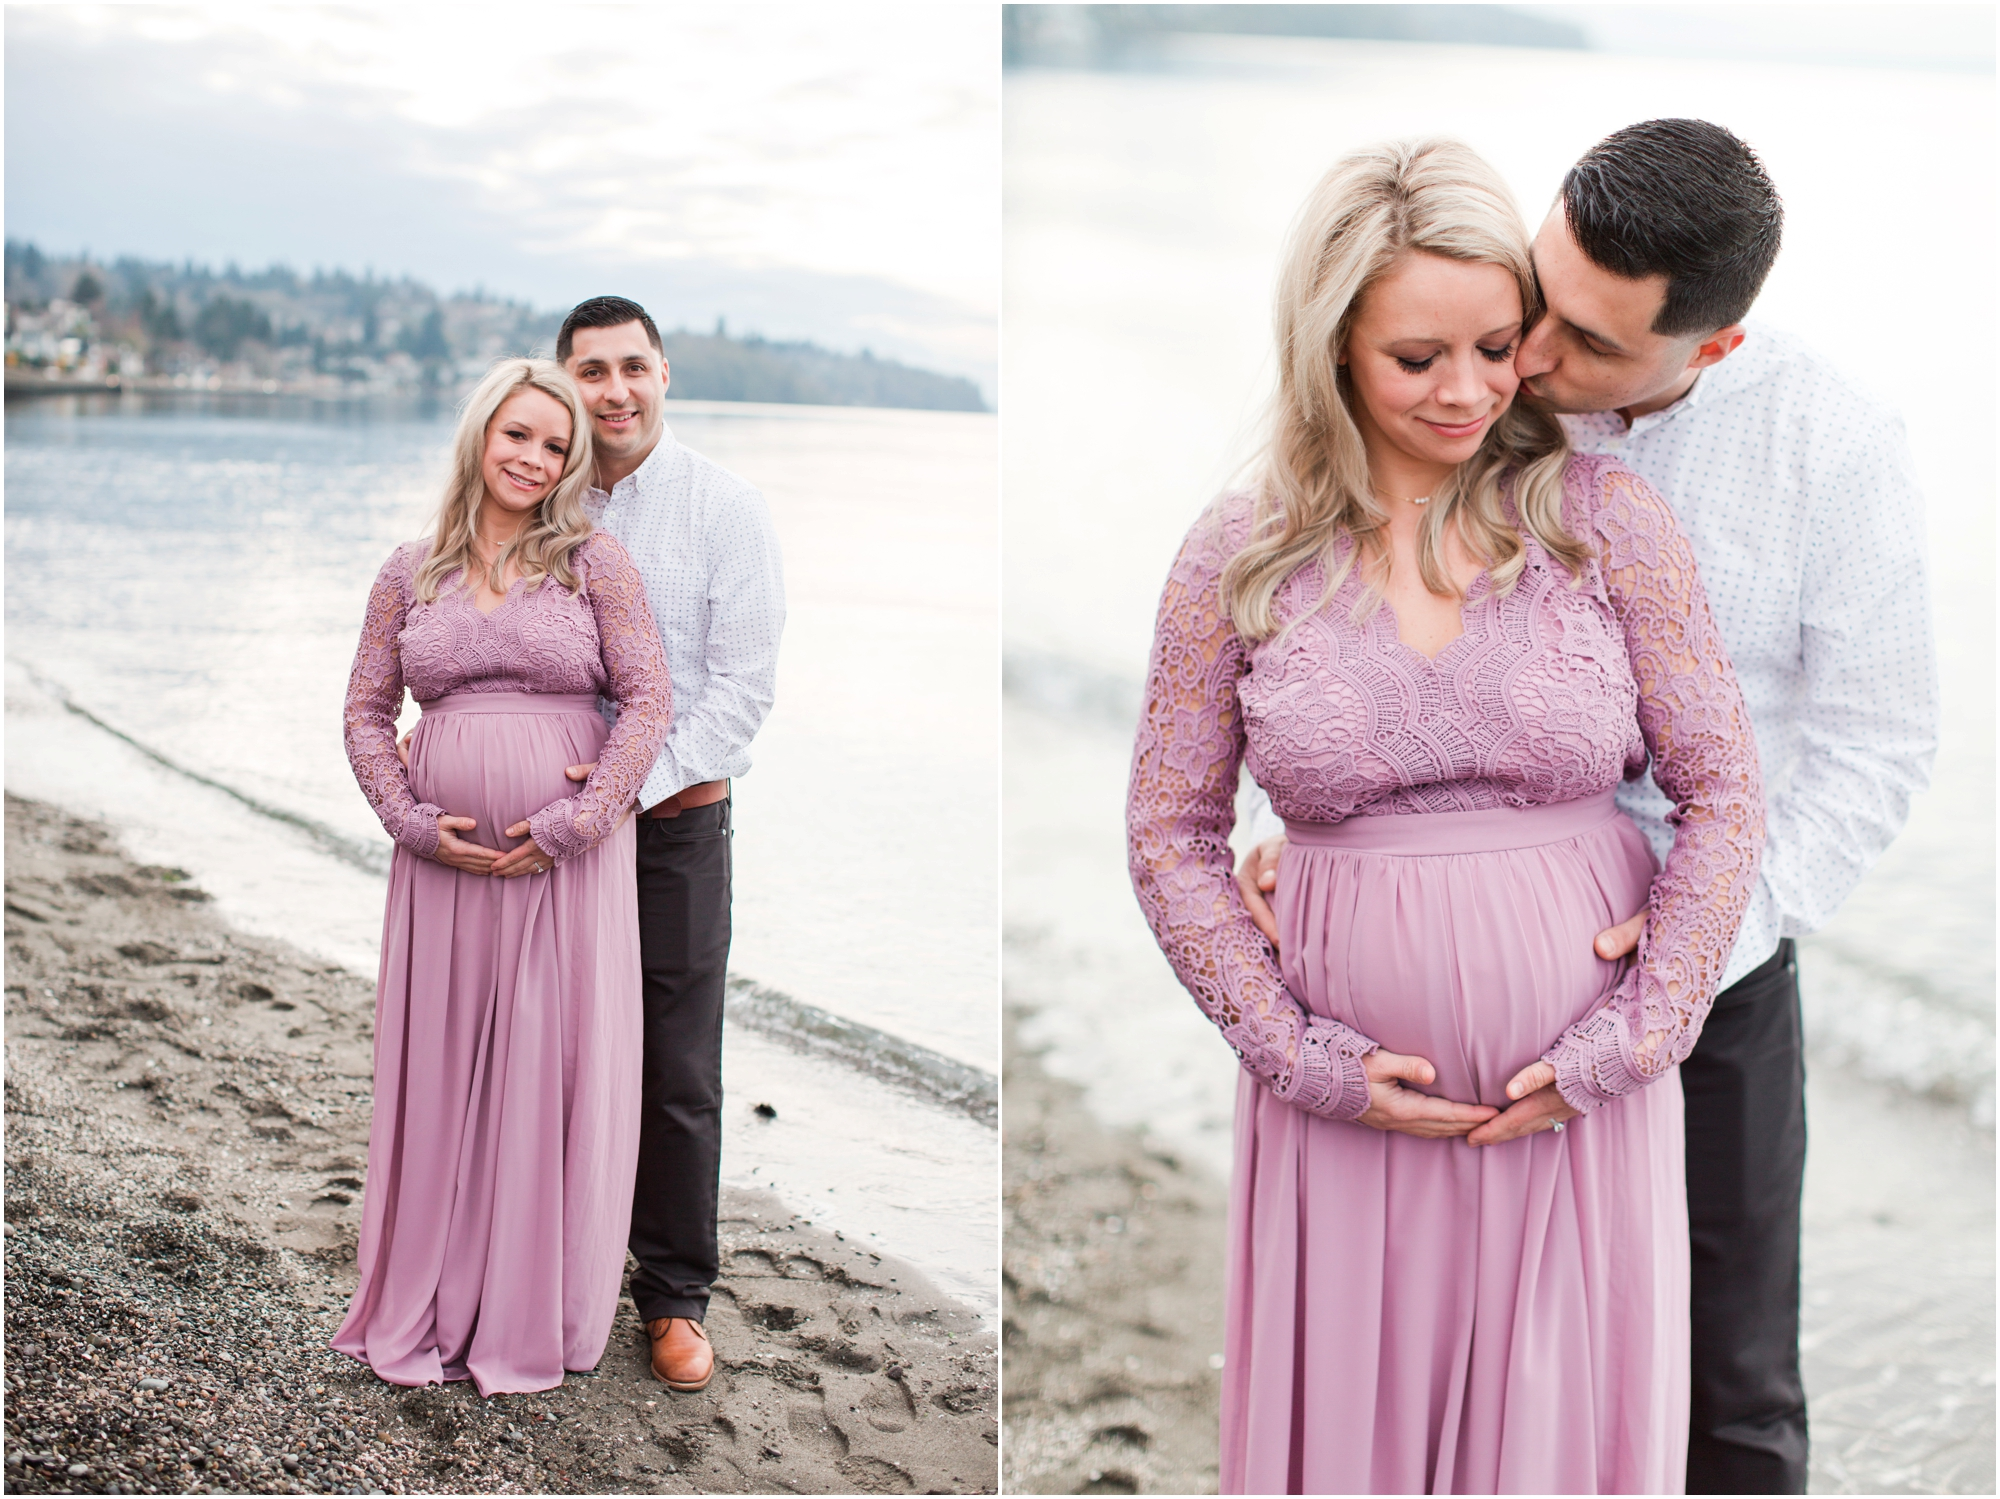 Maternity photos by Briana Calderon Photography based in the Greater Seattle & Tacoma, WA_0971.jpg